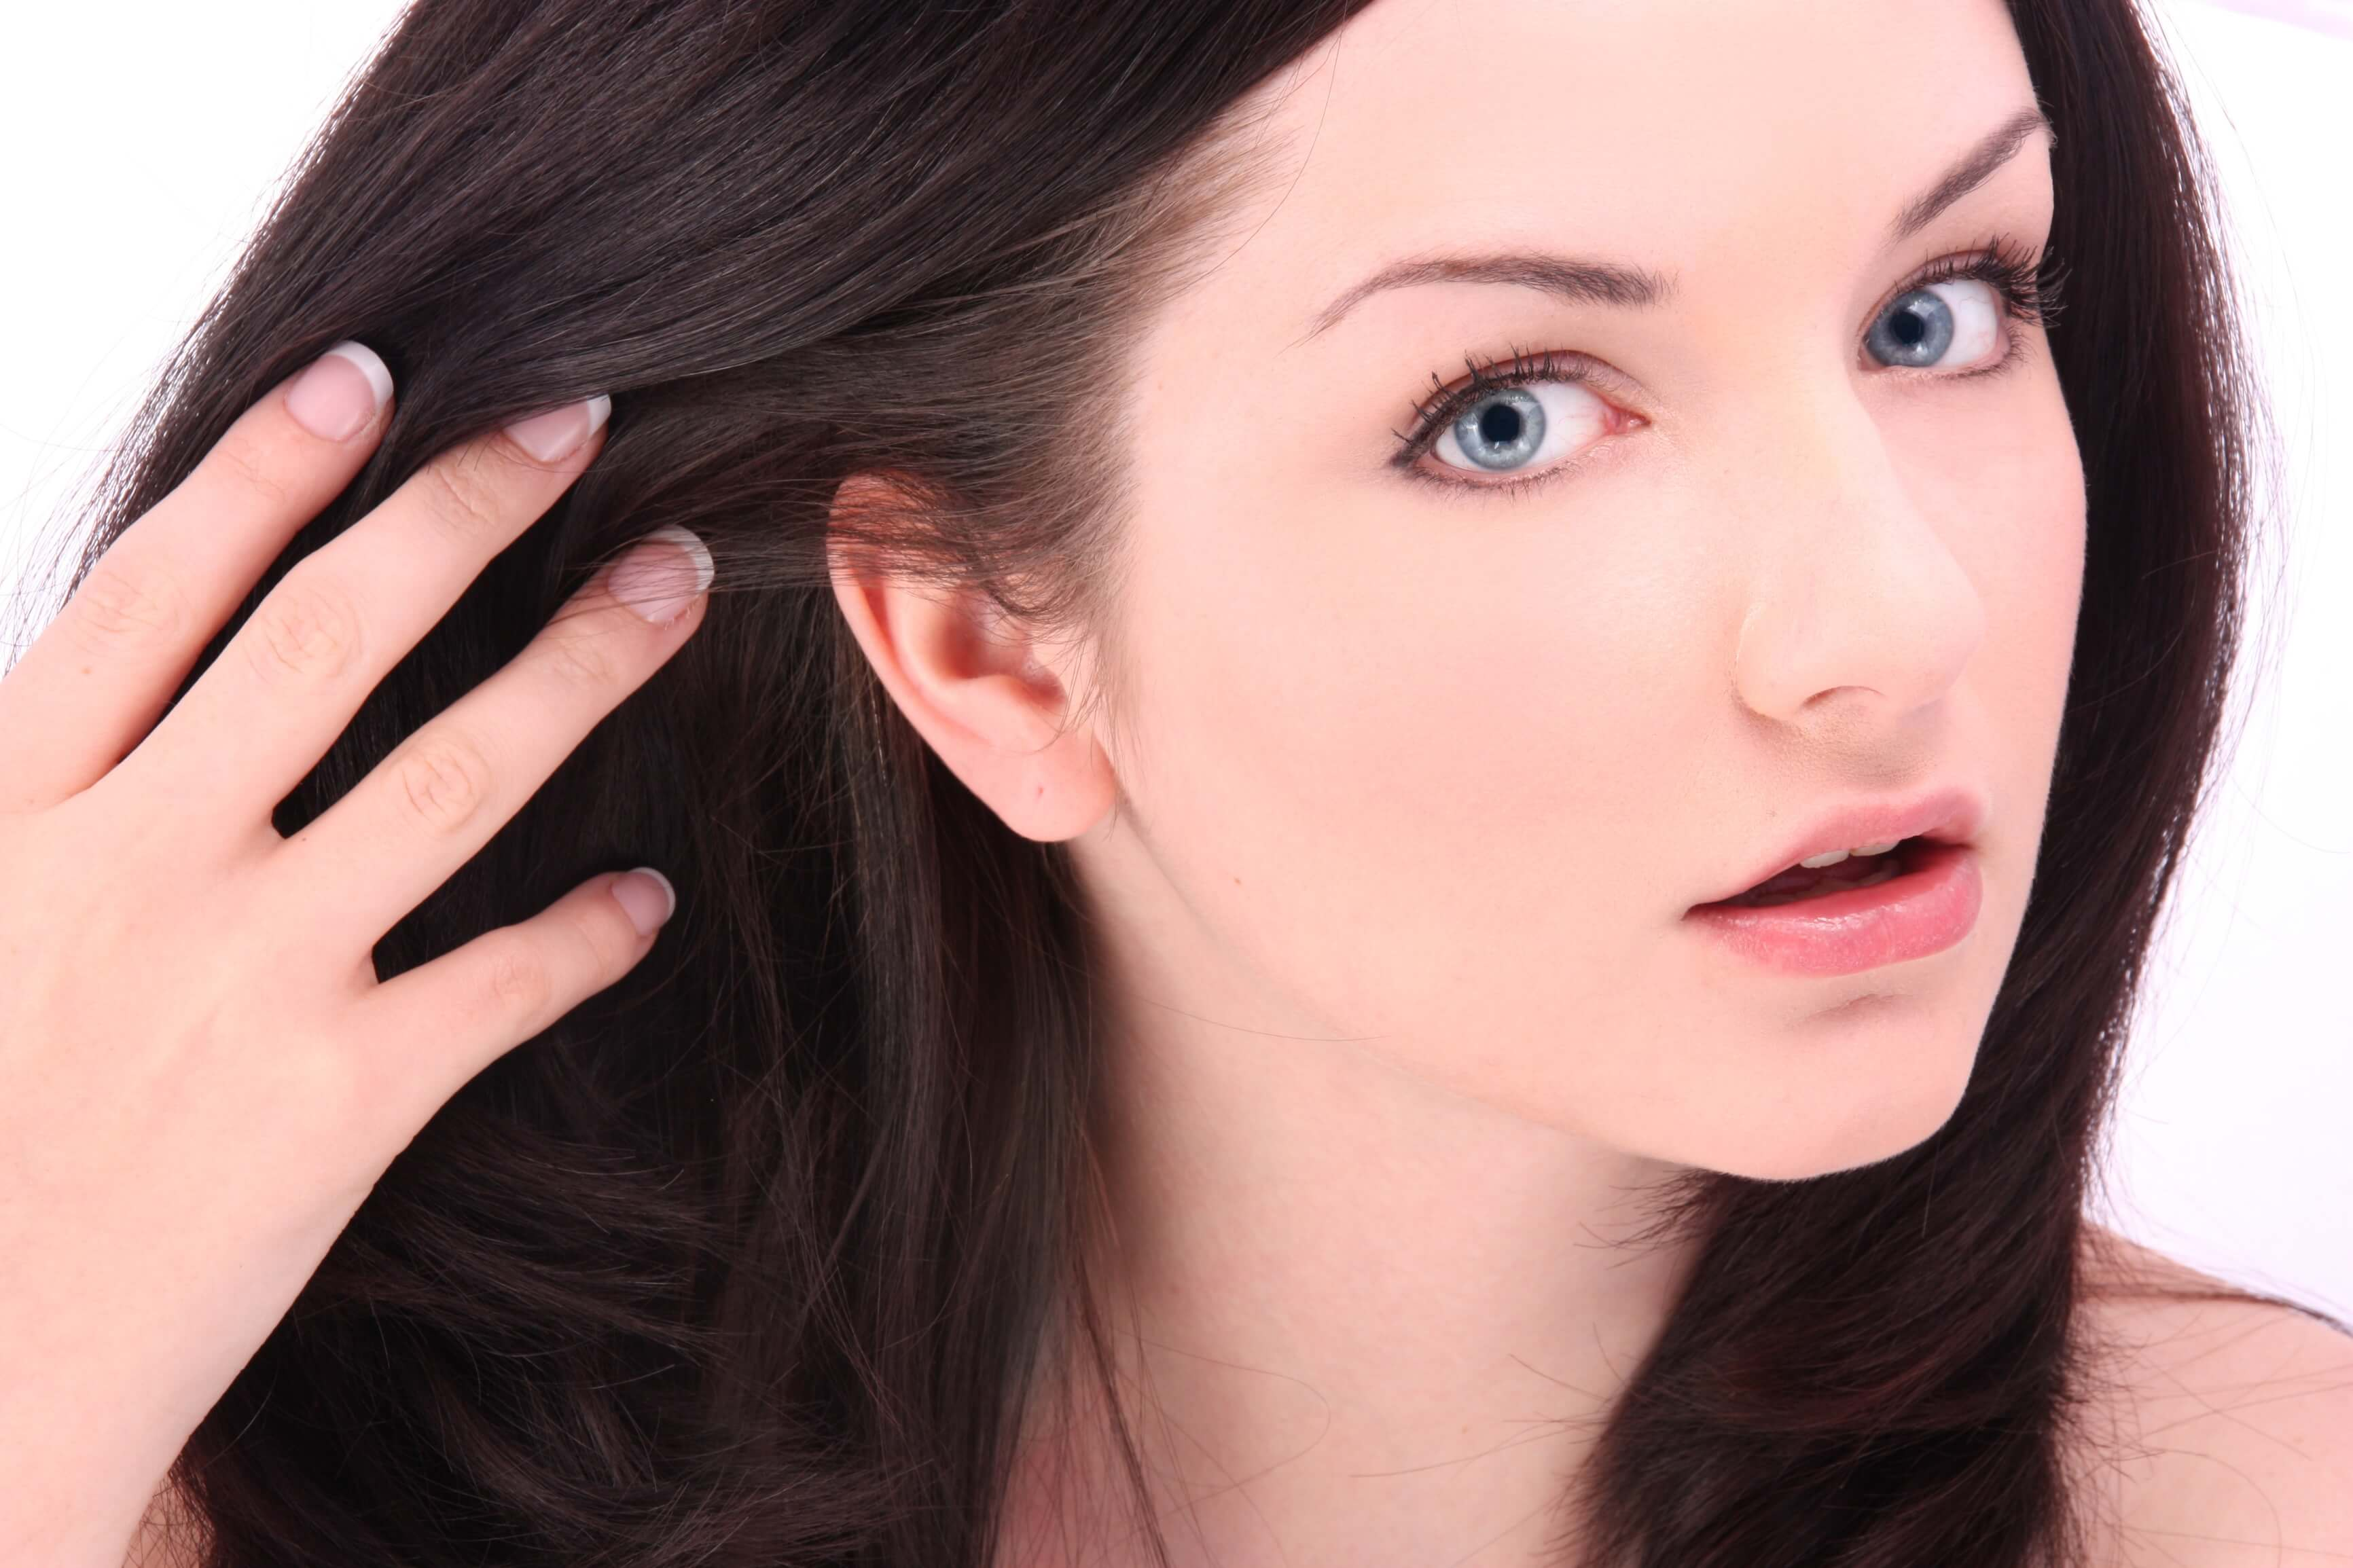 haircare-after-otoplasty